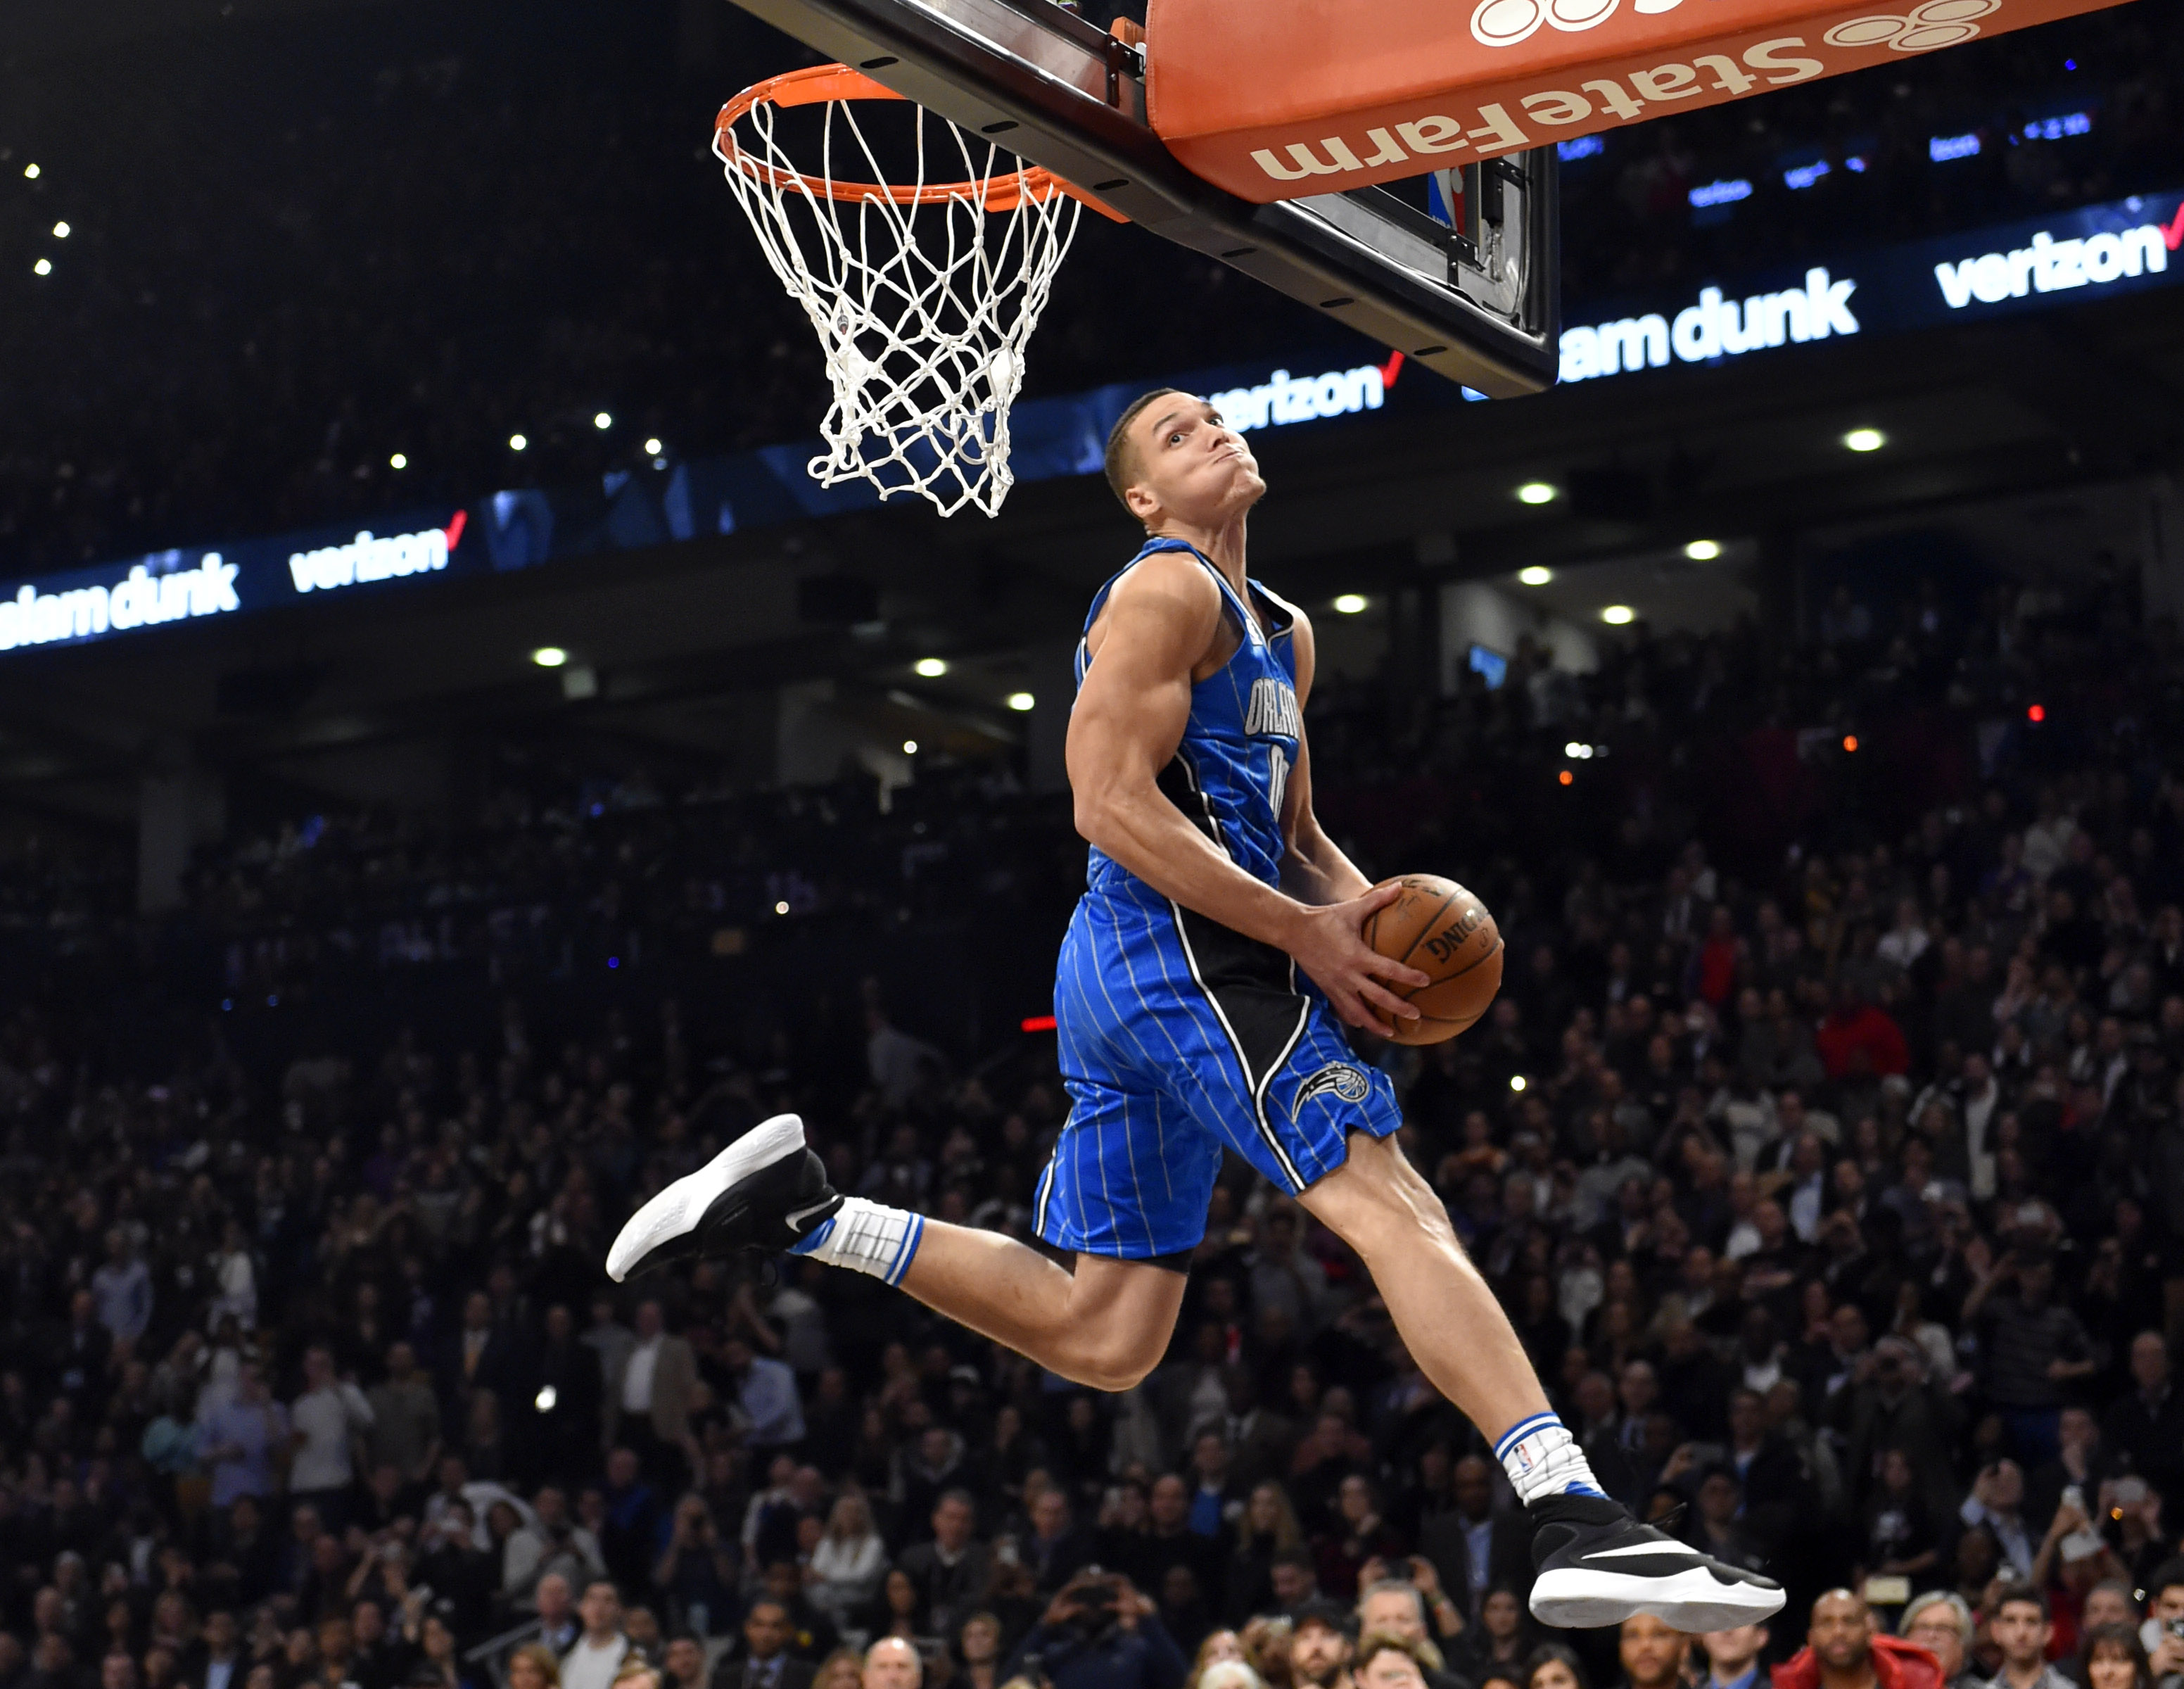 NBA All-Star Saturday night 2017 live stream: How to watch online